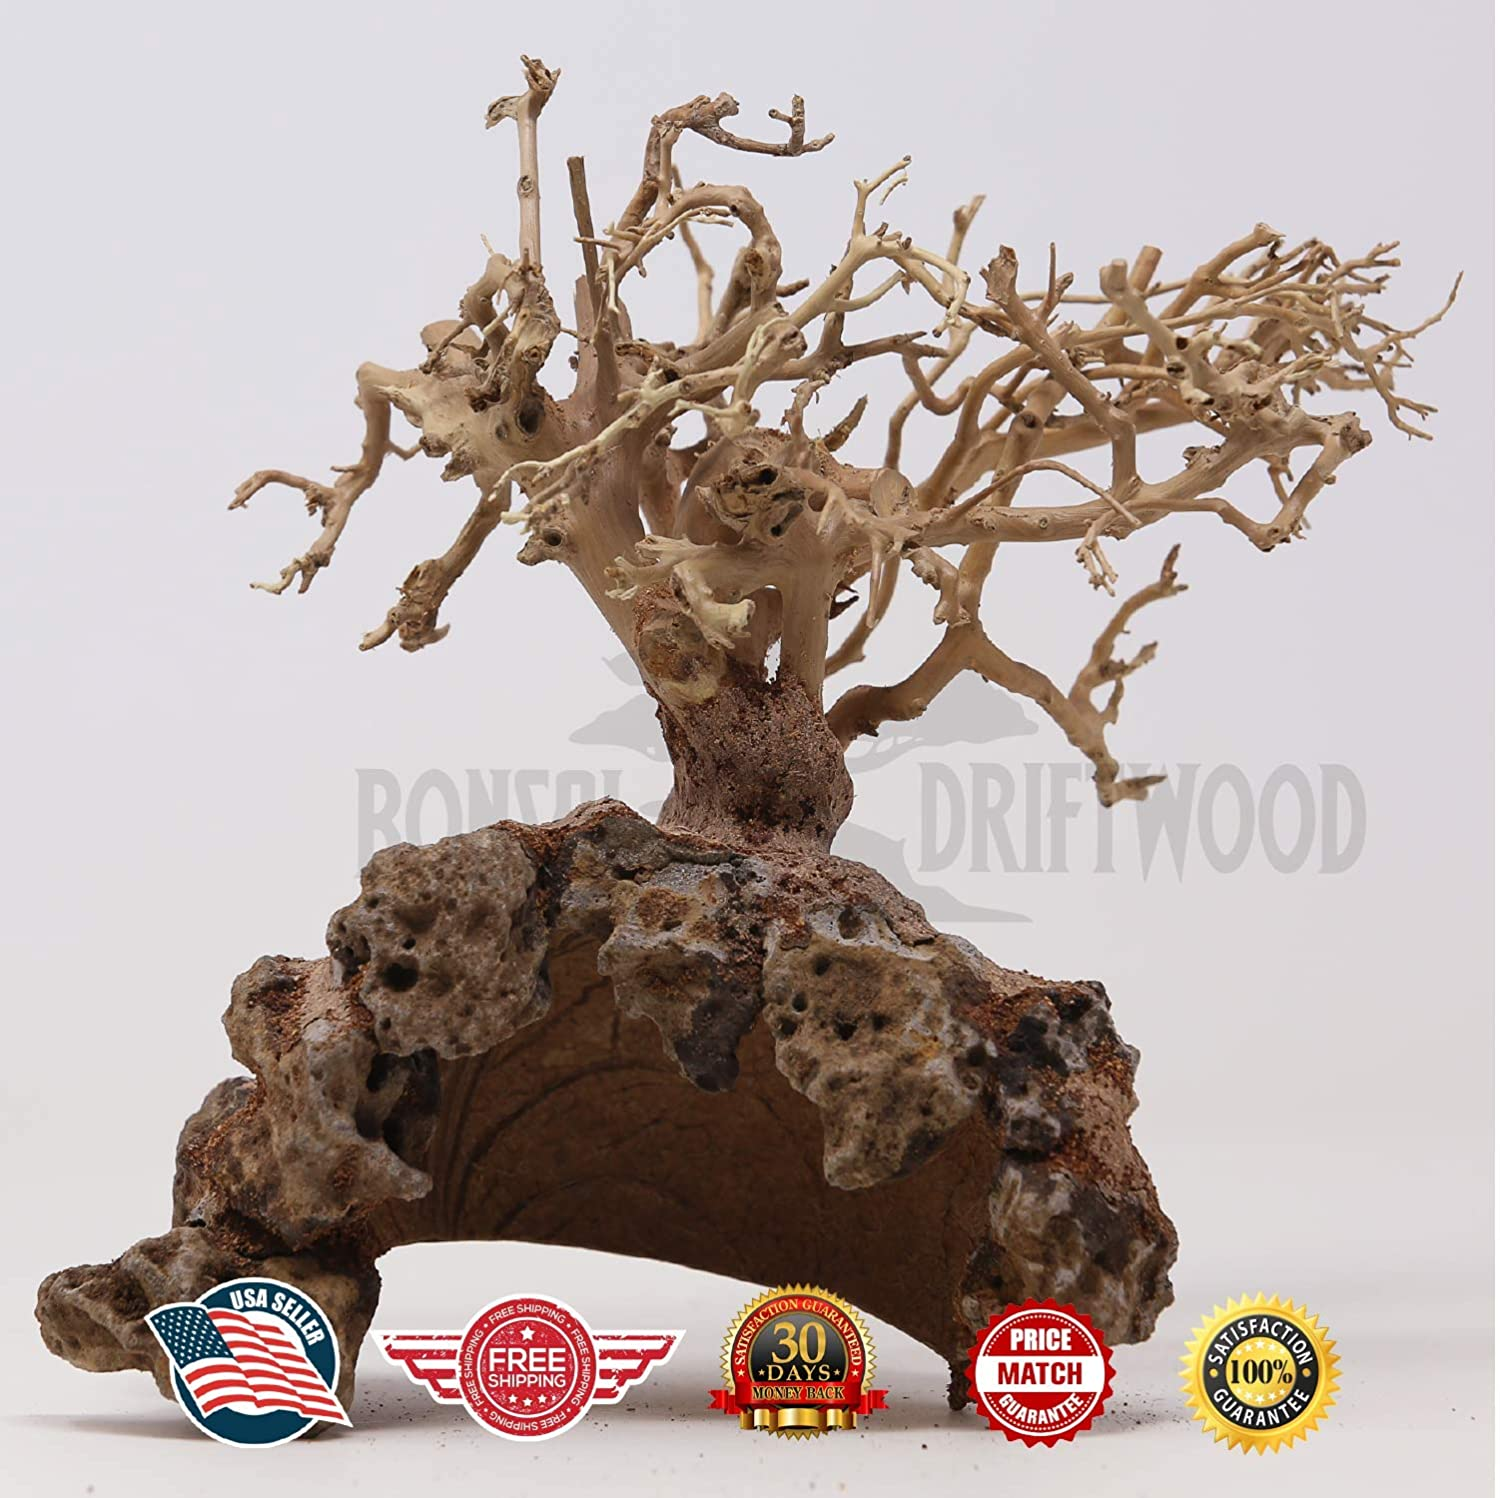 Amazon Com Bonsai Driftwood Aquarium Tree Dry Coconut Gd Random Pick 8in H X 10in L Natural Handcrafted Fish Tank Decoration Helps Balance Water Ph Levels Stabilizes Environments Easy To